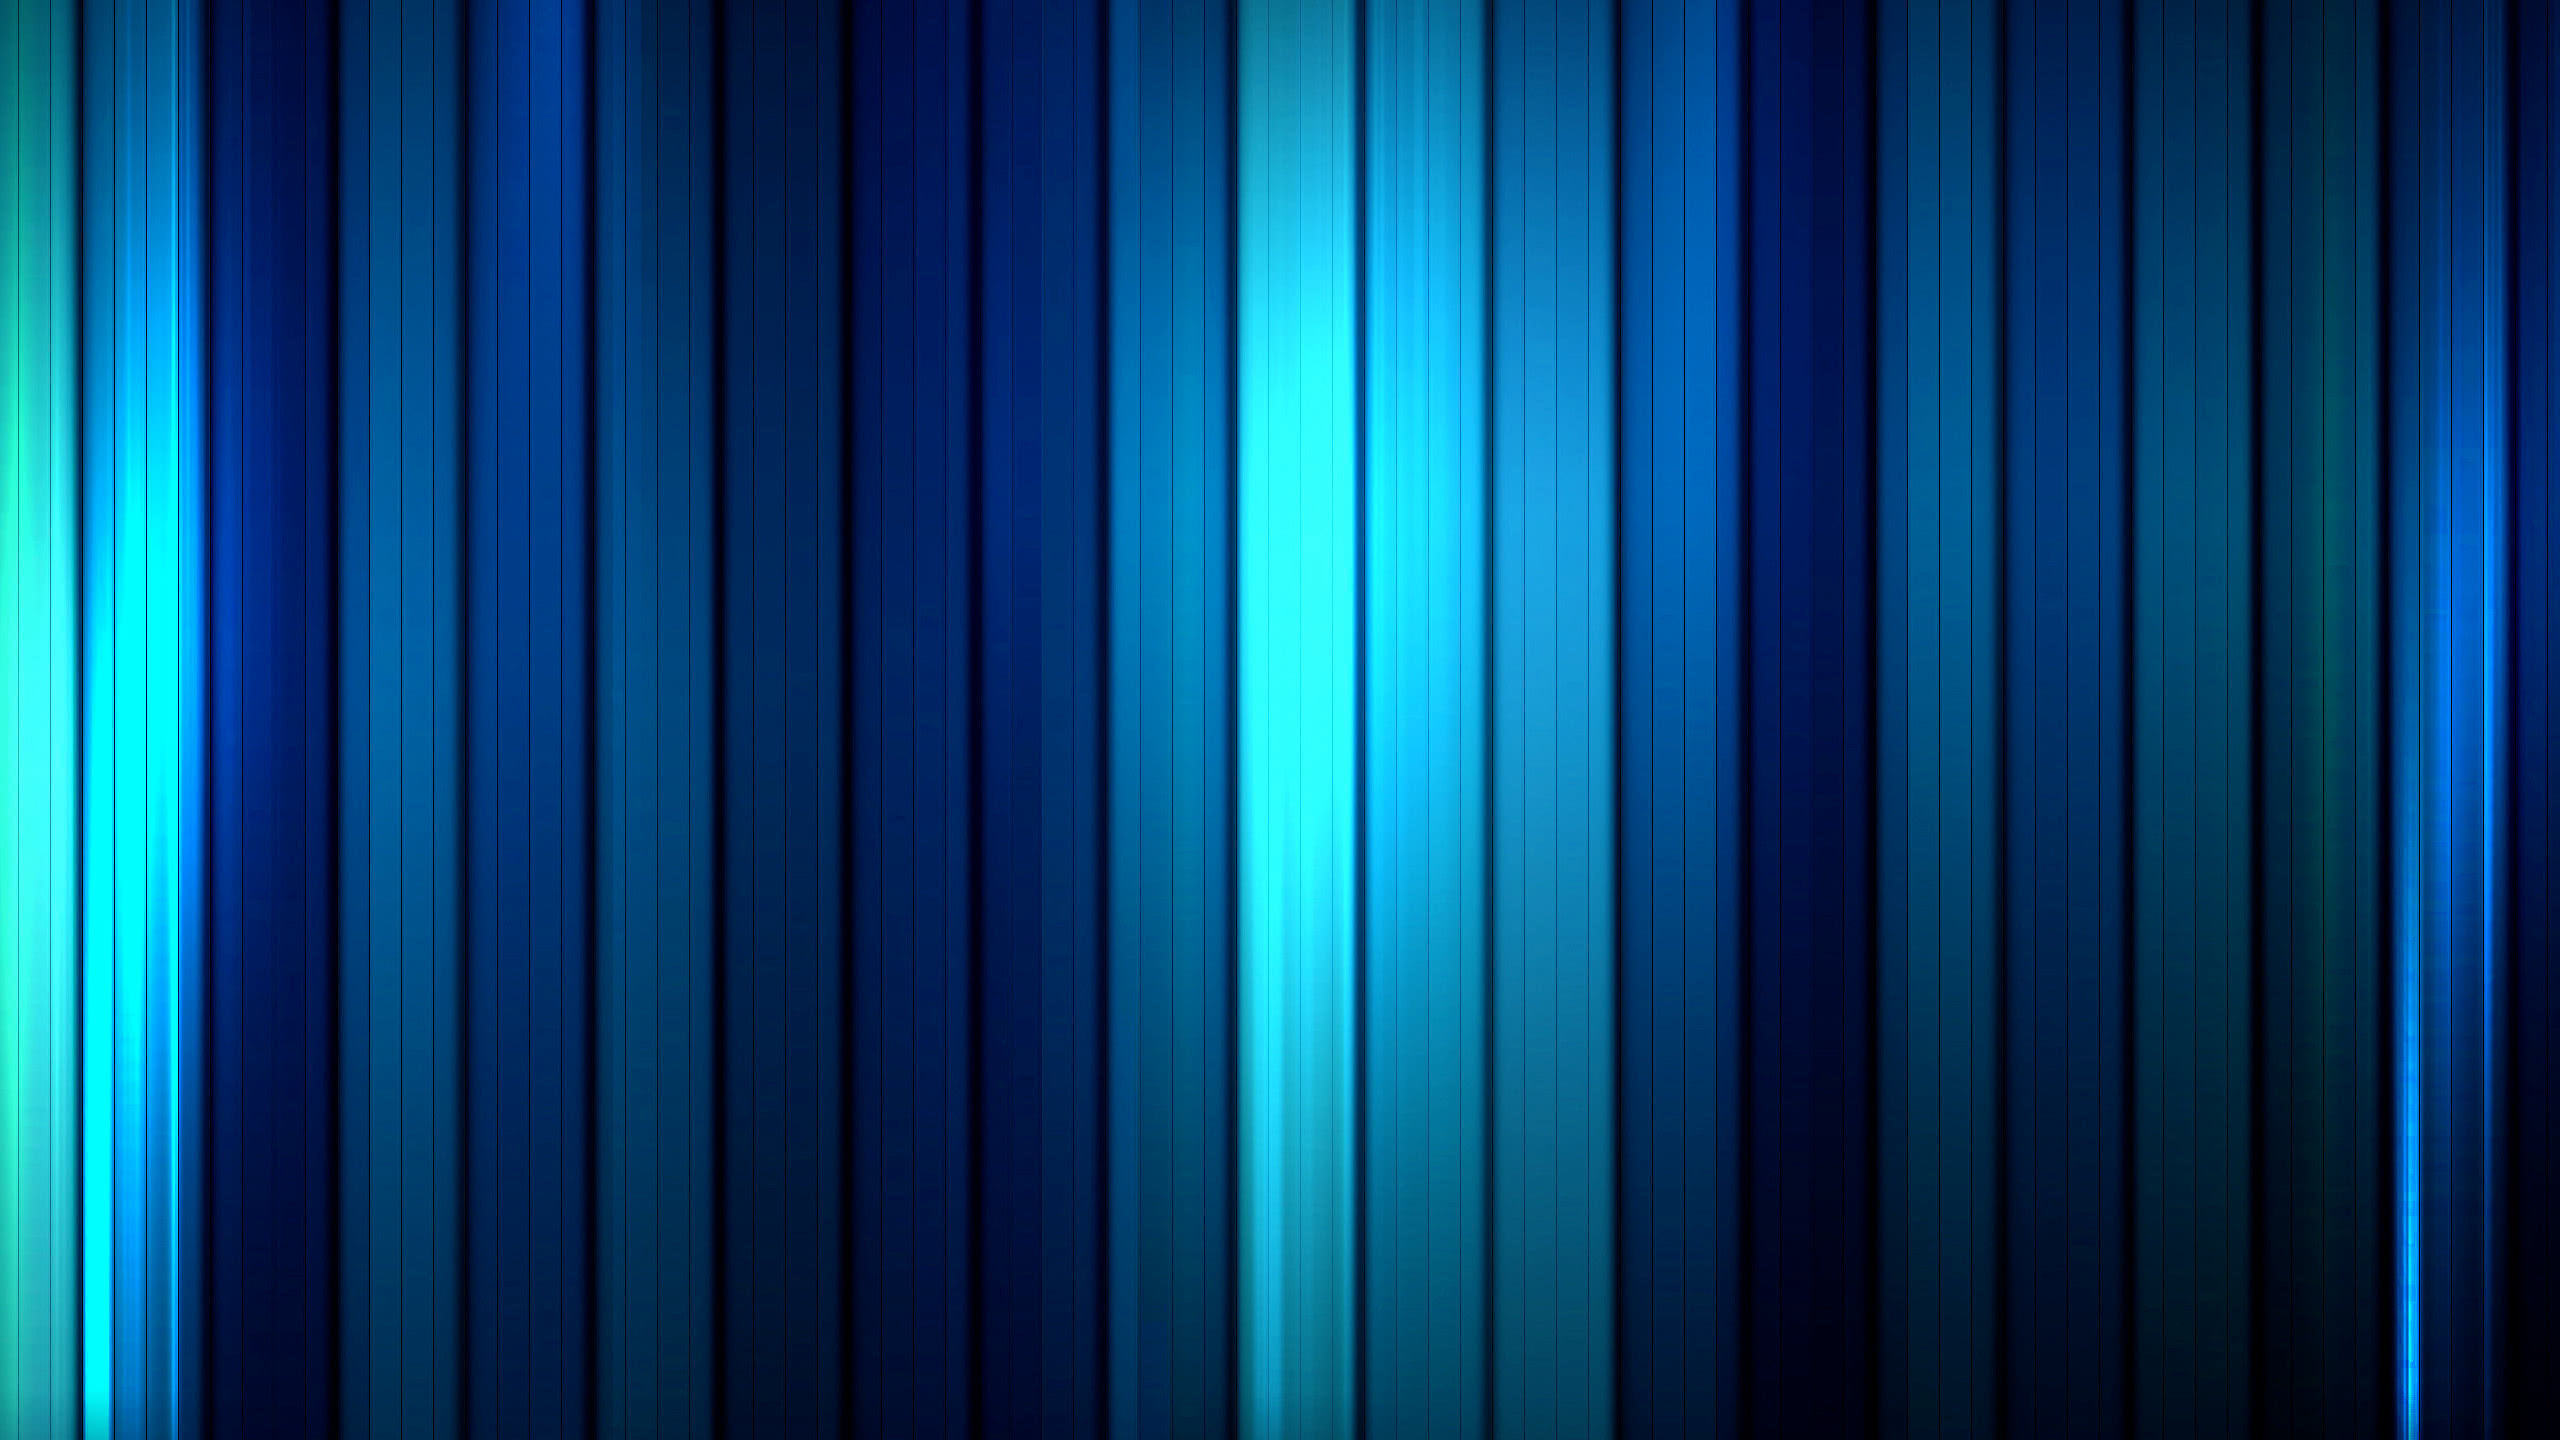 stripes blue shades wqhd 1440p wallpaper